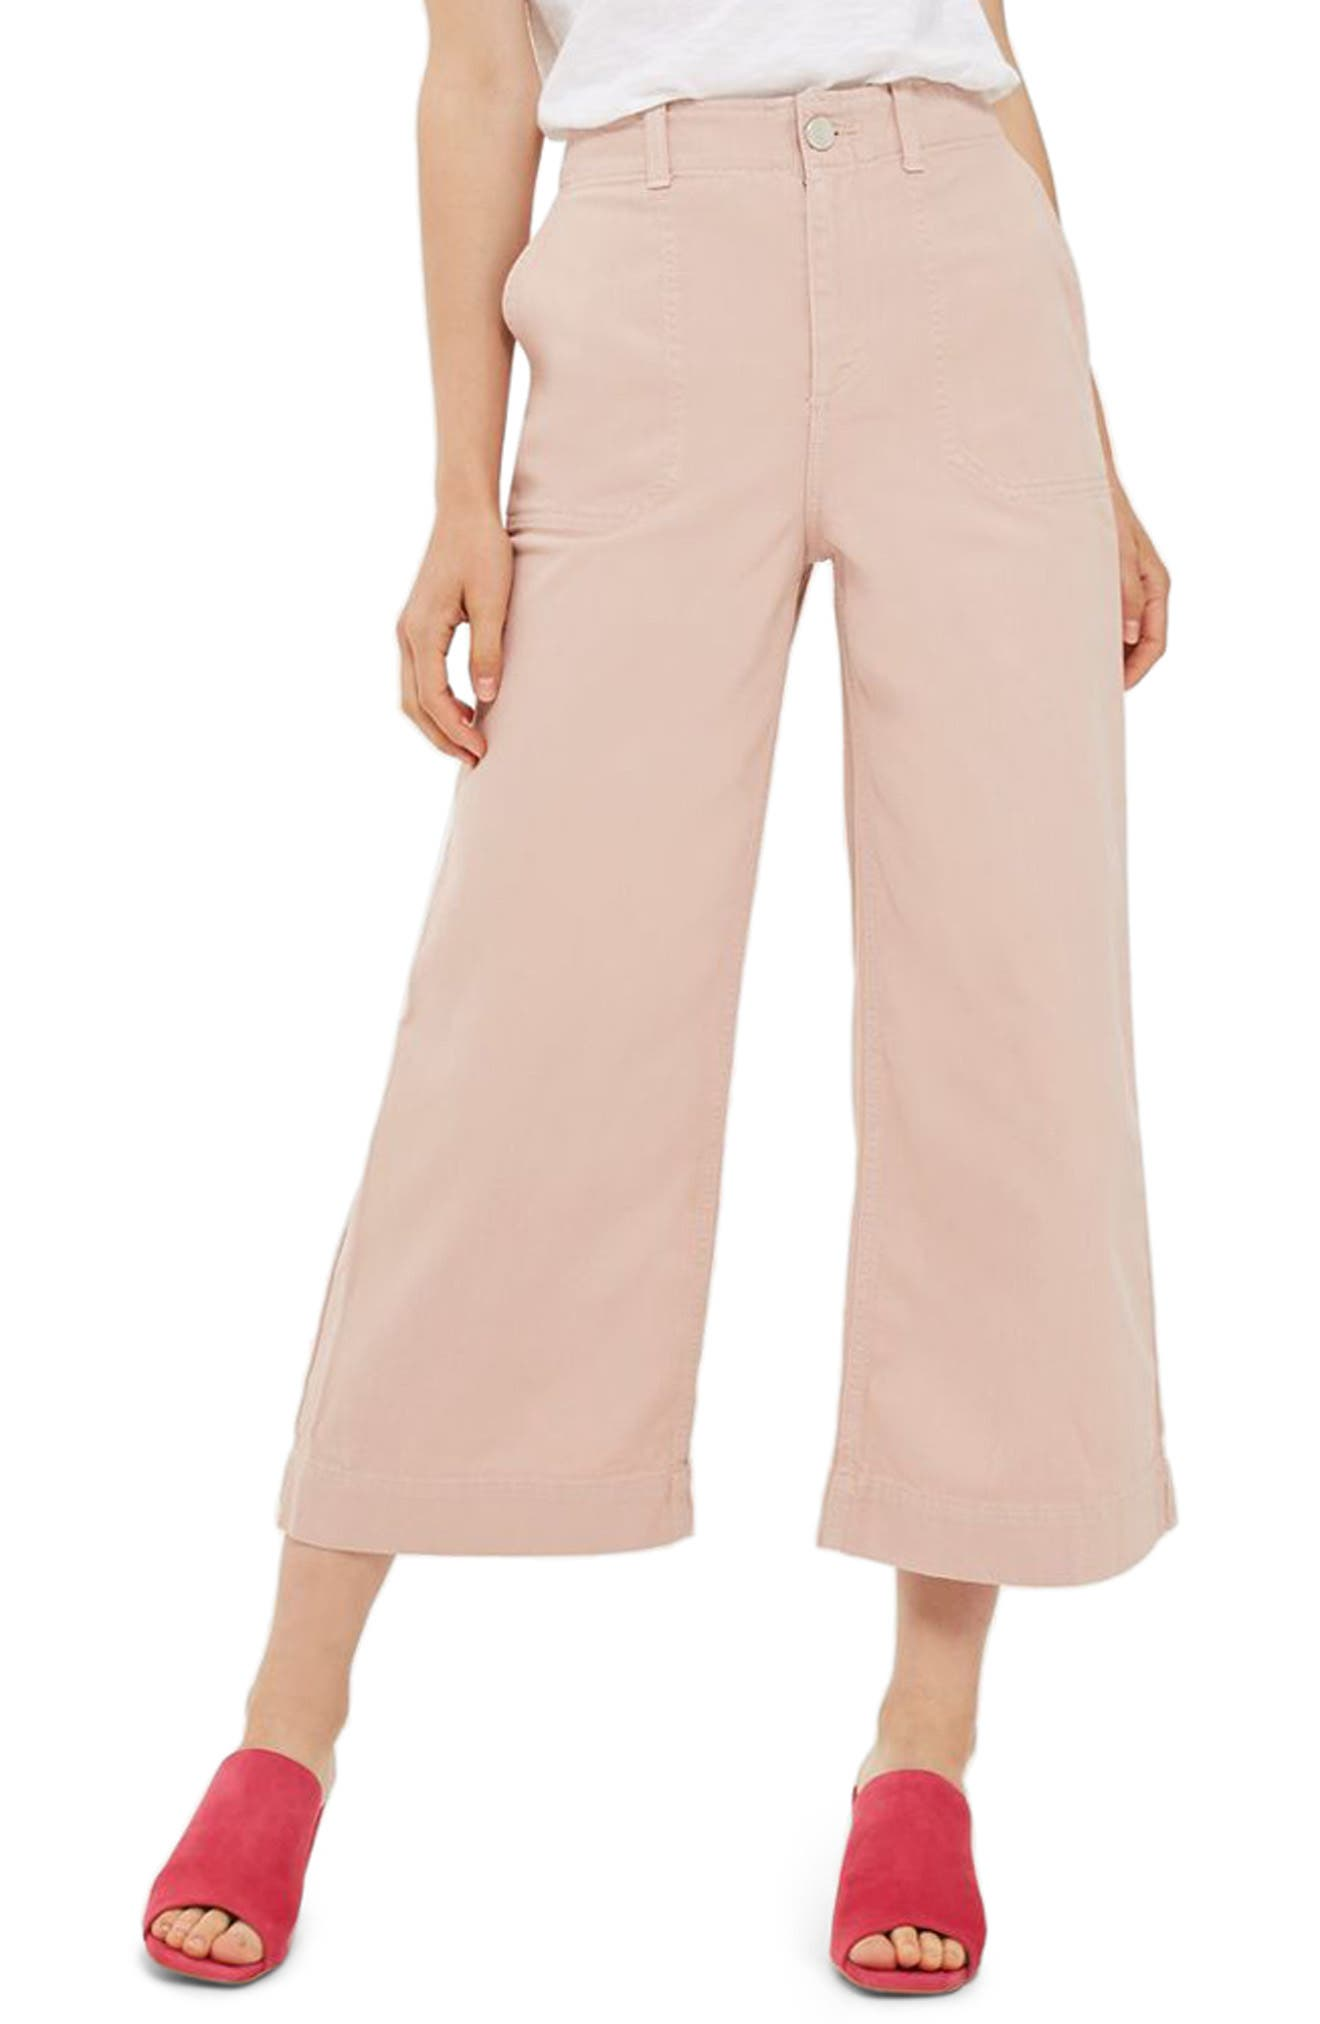 Topshop Sailor Crop Trousers (Regular & Petite)